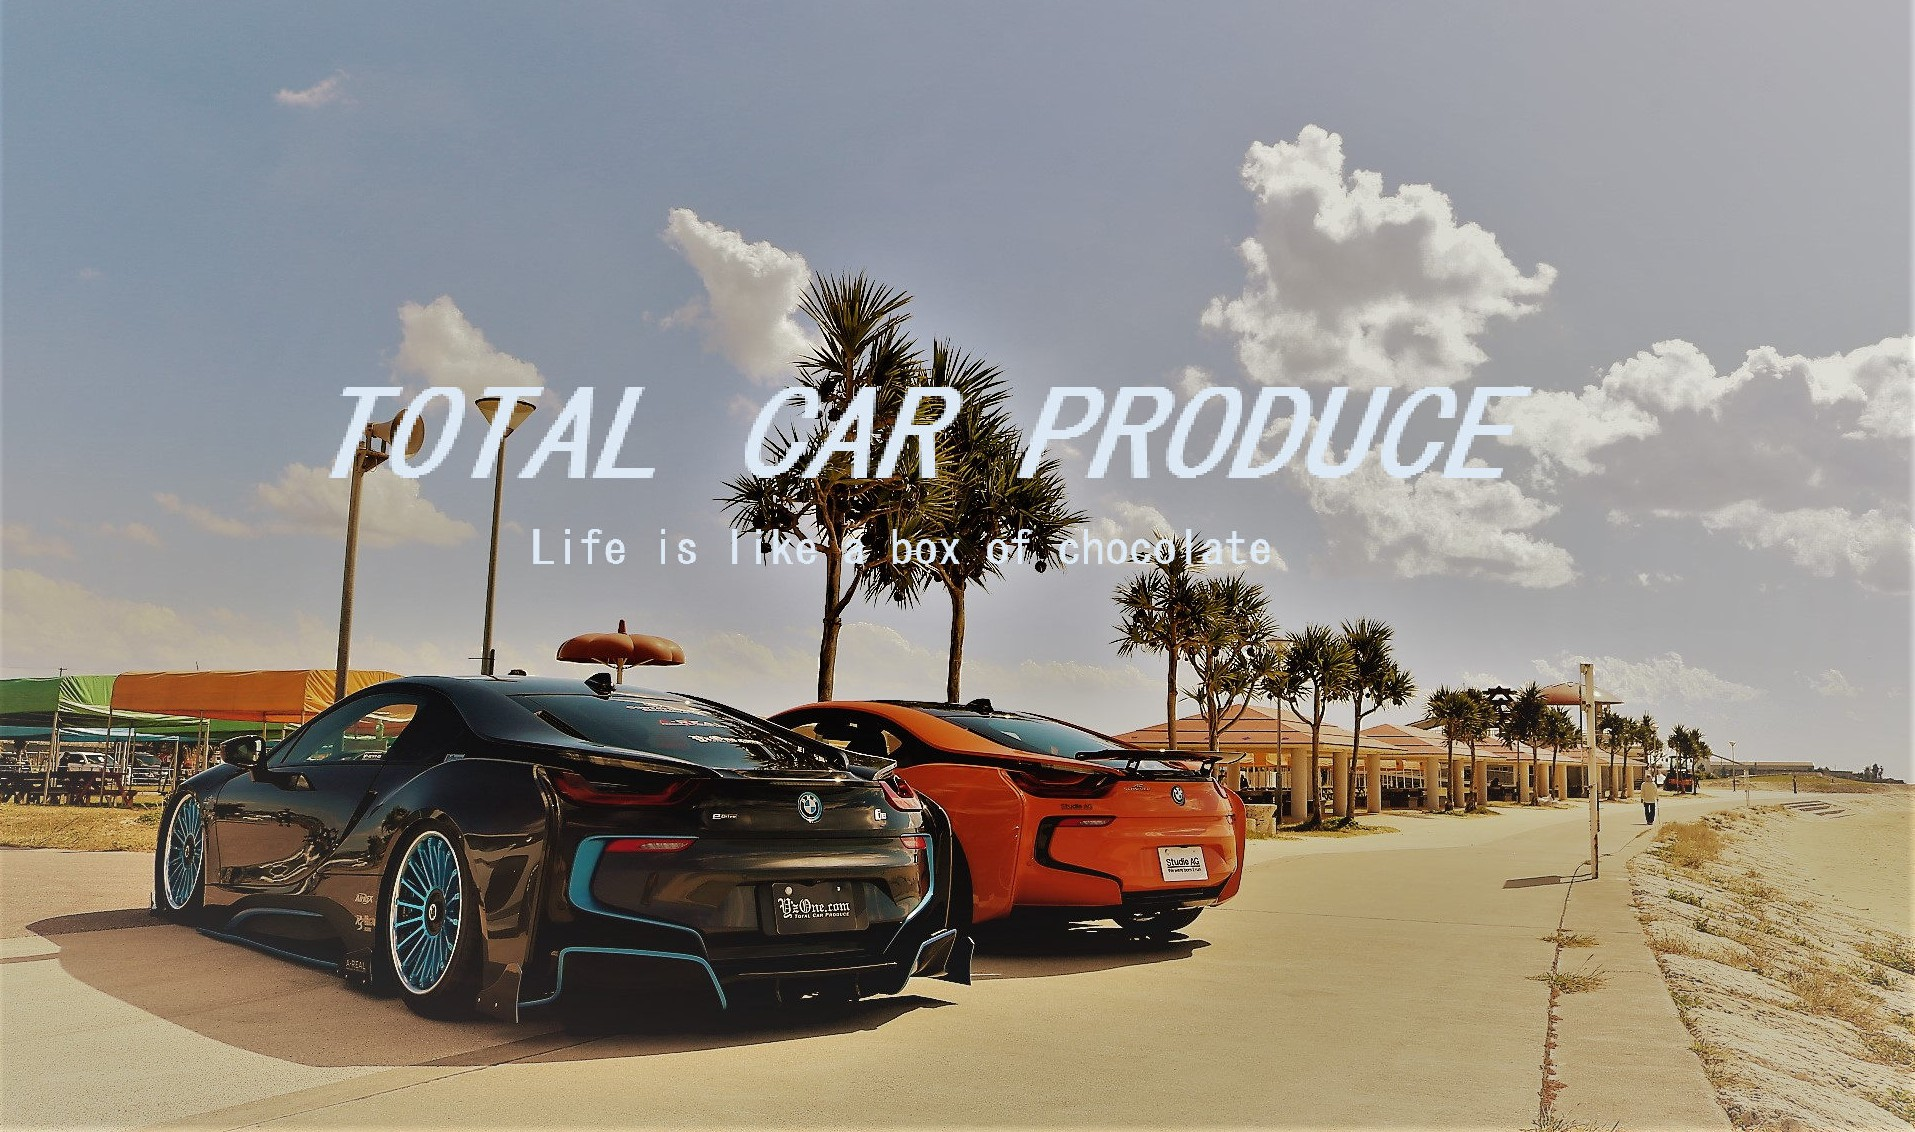 TOTAL CAR PRODUCE Life is like a box of chocolate.